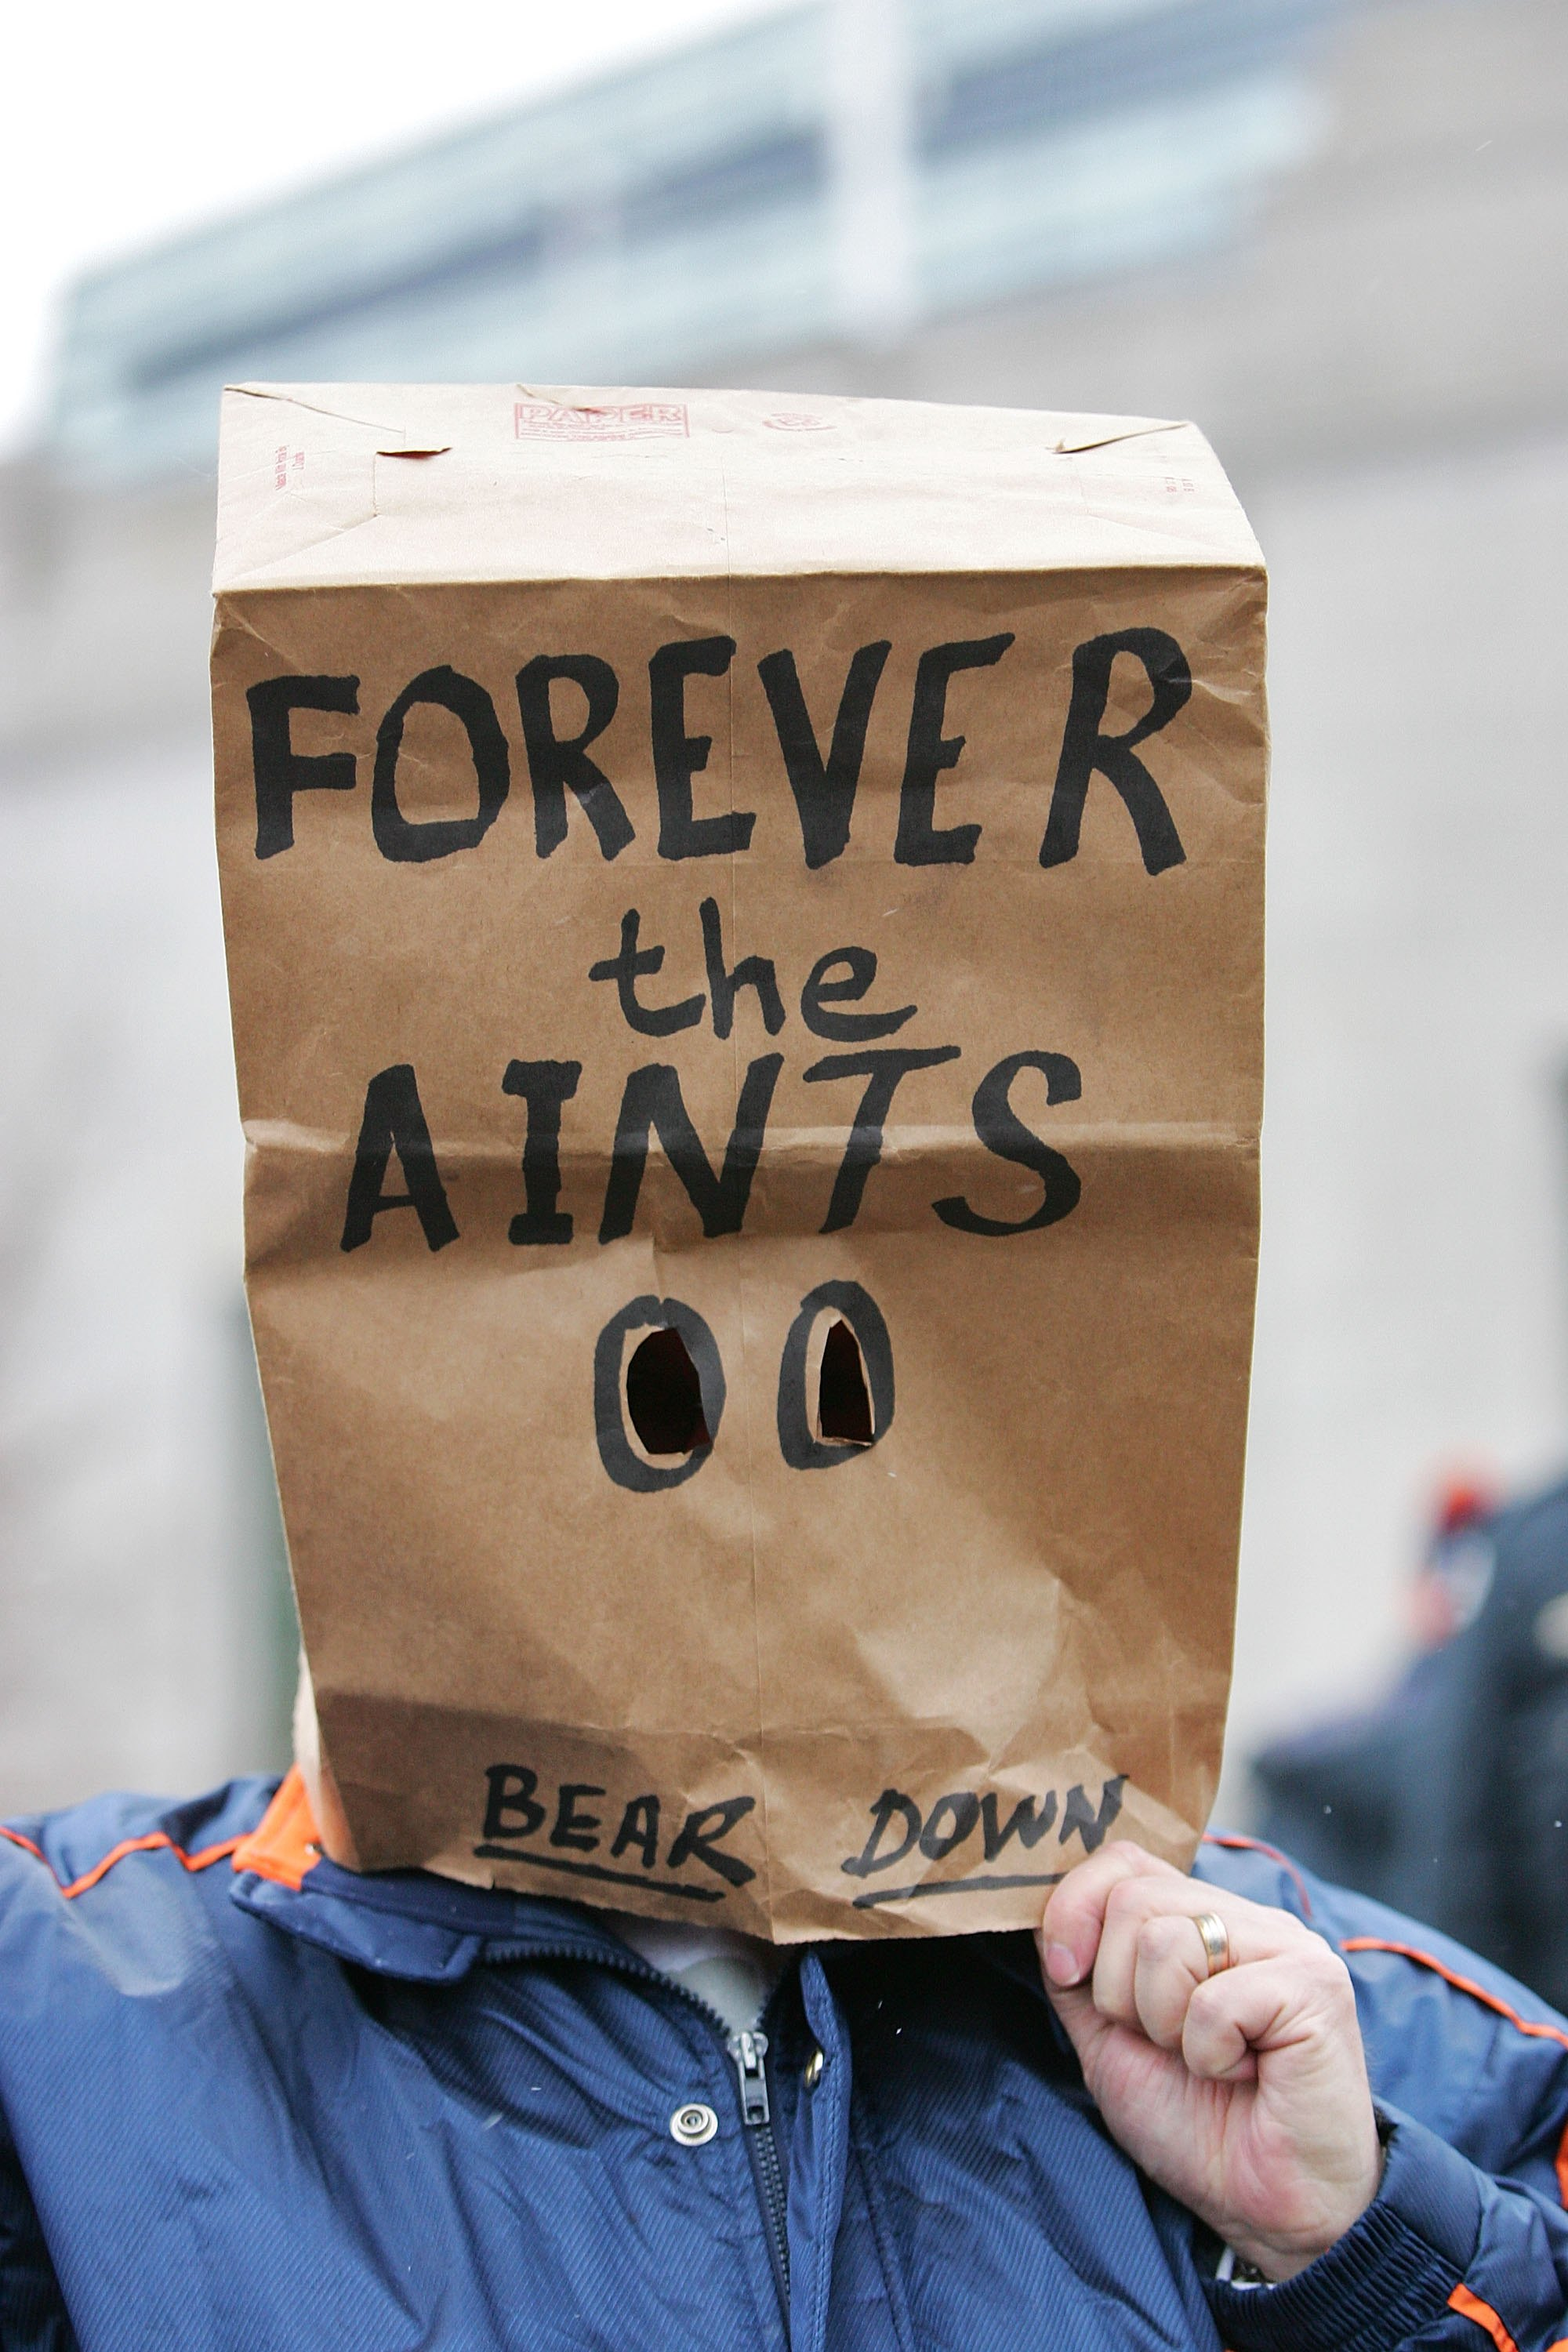 CHICAGO - JANUARY 21: A fan with a paper bag on his head with the words 'Forever the Aints Bear Down' on it stands outside before the NFC Championship Game between the New Orleans Saints and the Chicago Bears on January 21, 2007 at Soldier Field in Chicag